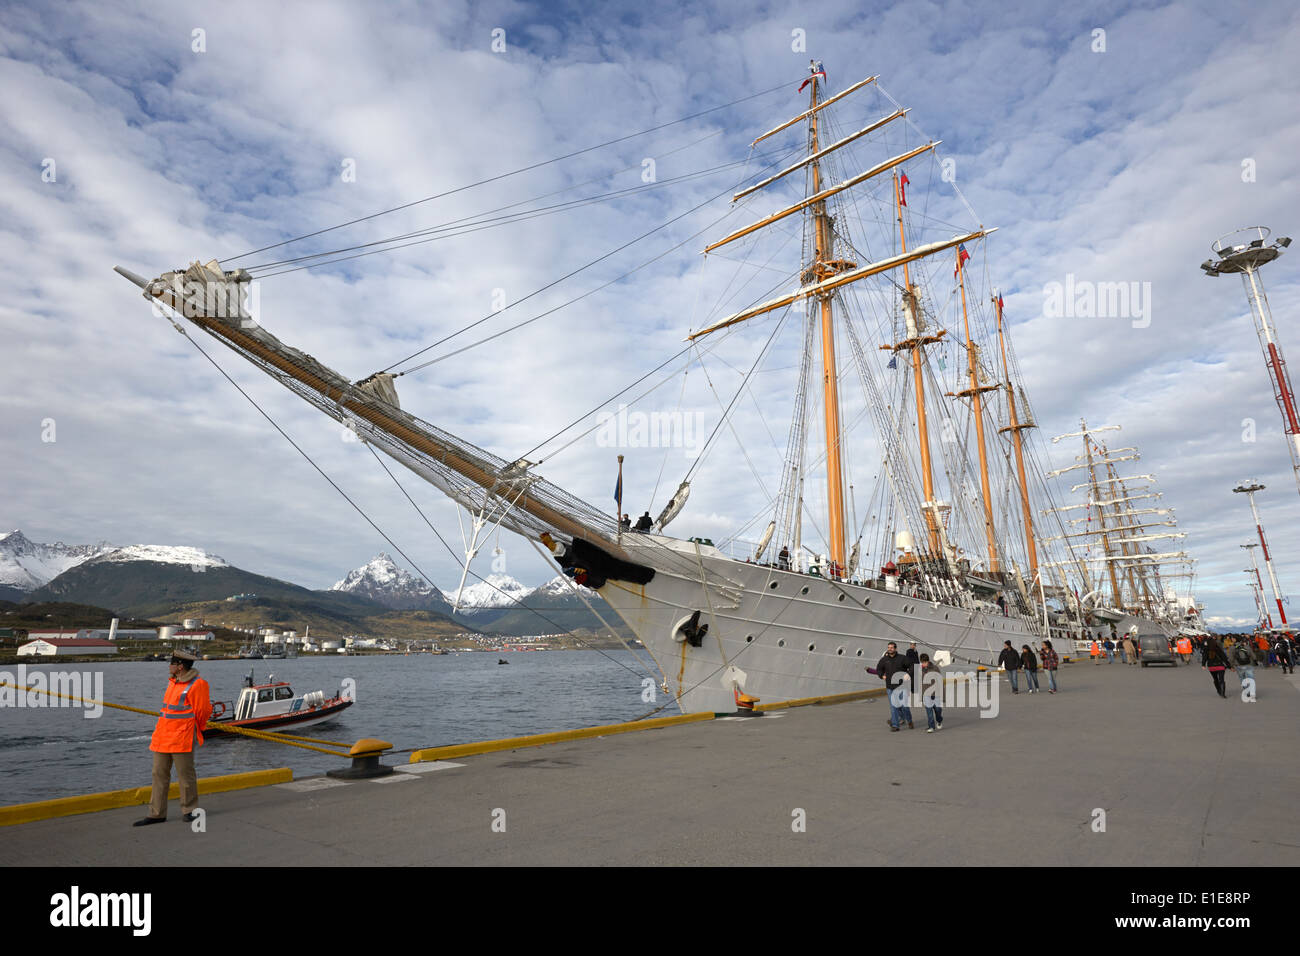 chilean navy esmeralda latin american navy sail training ships moored in Ushuaia Argentina part of velas latinoamerican 2014 - Stock Image